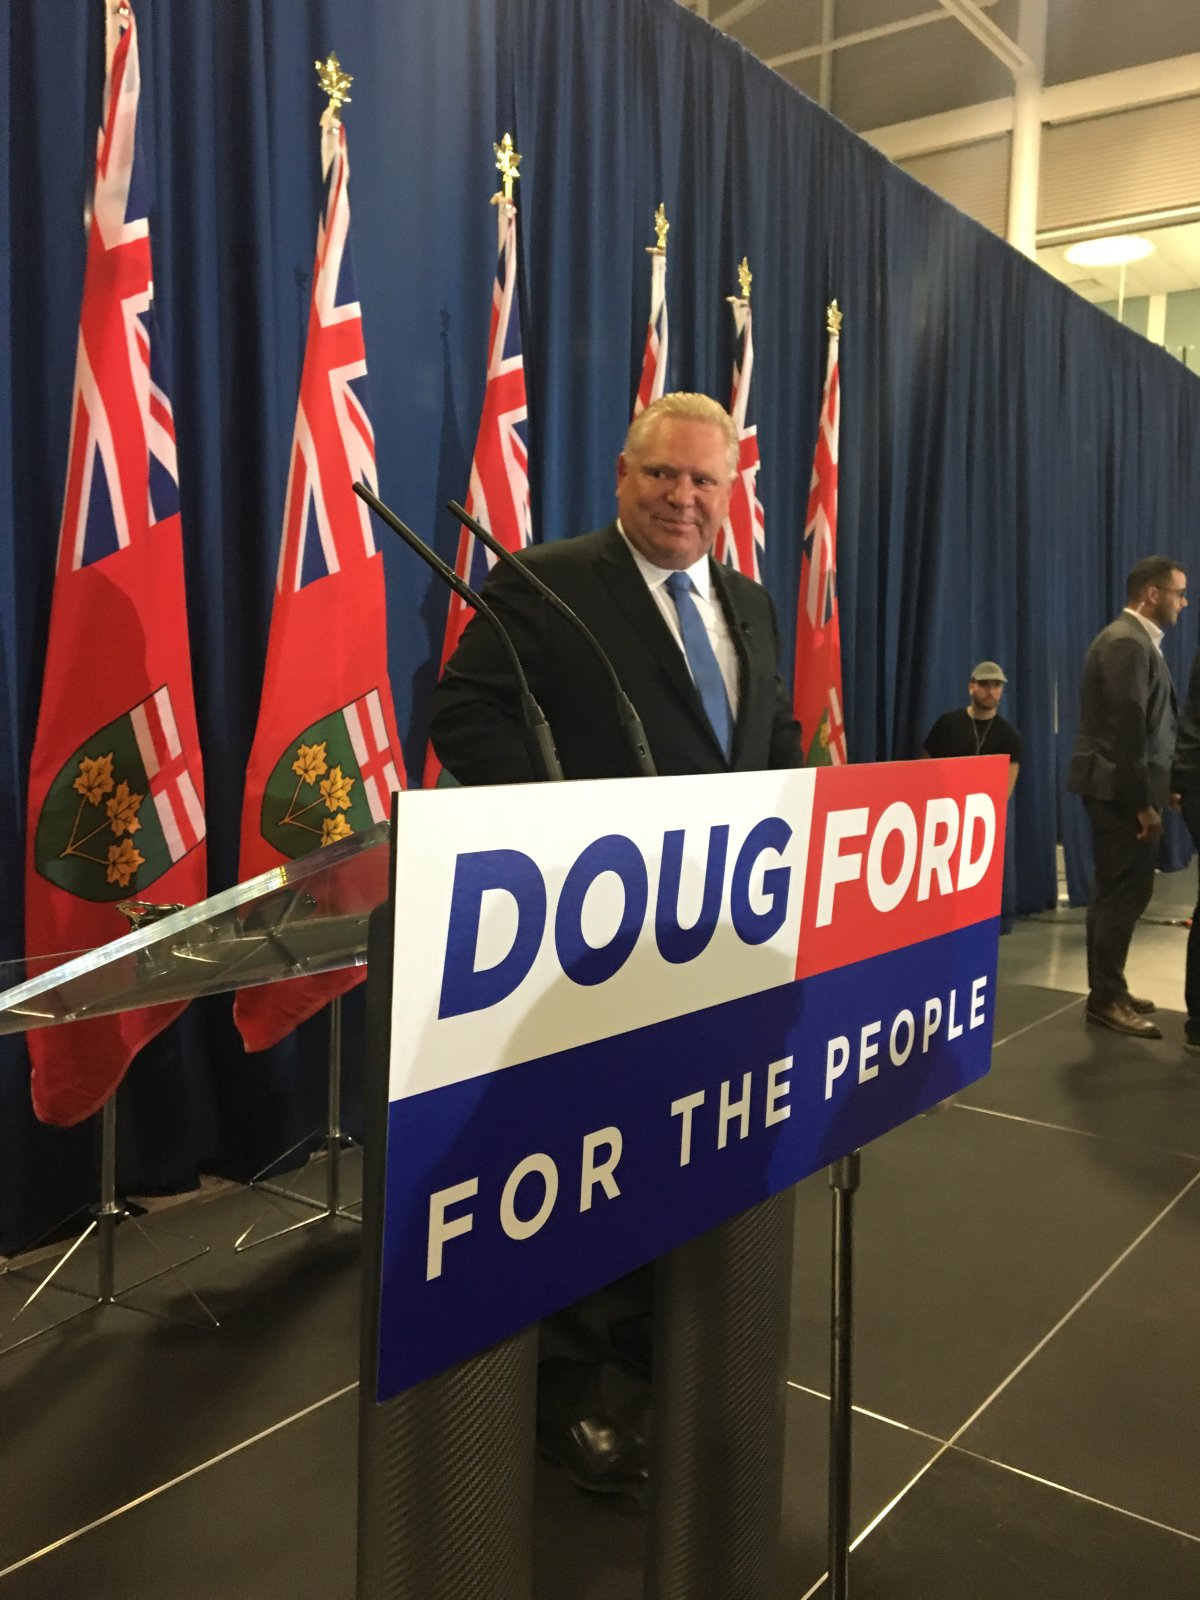 Progressive Conservative Leader Doug Ford spoke to an arena of supporters in Barrie on Friday night.